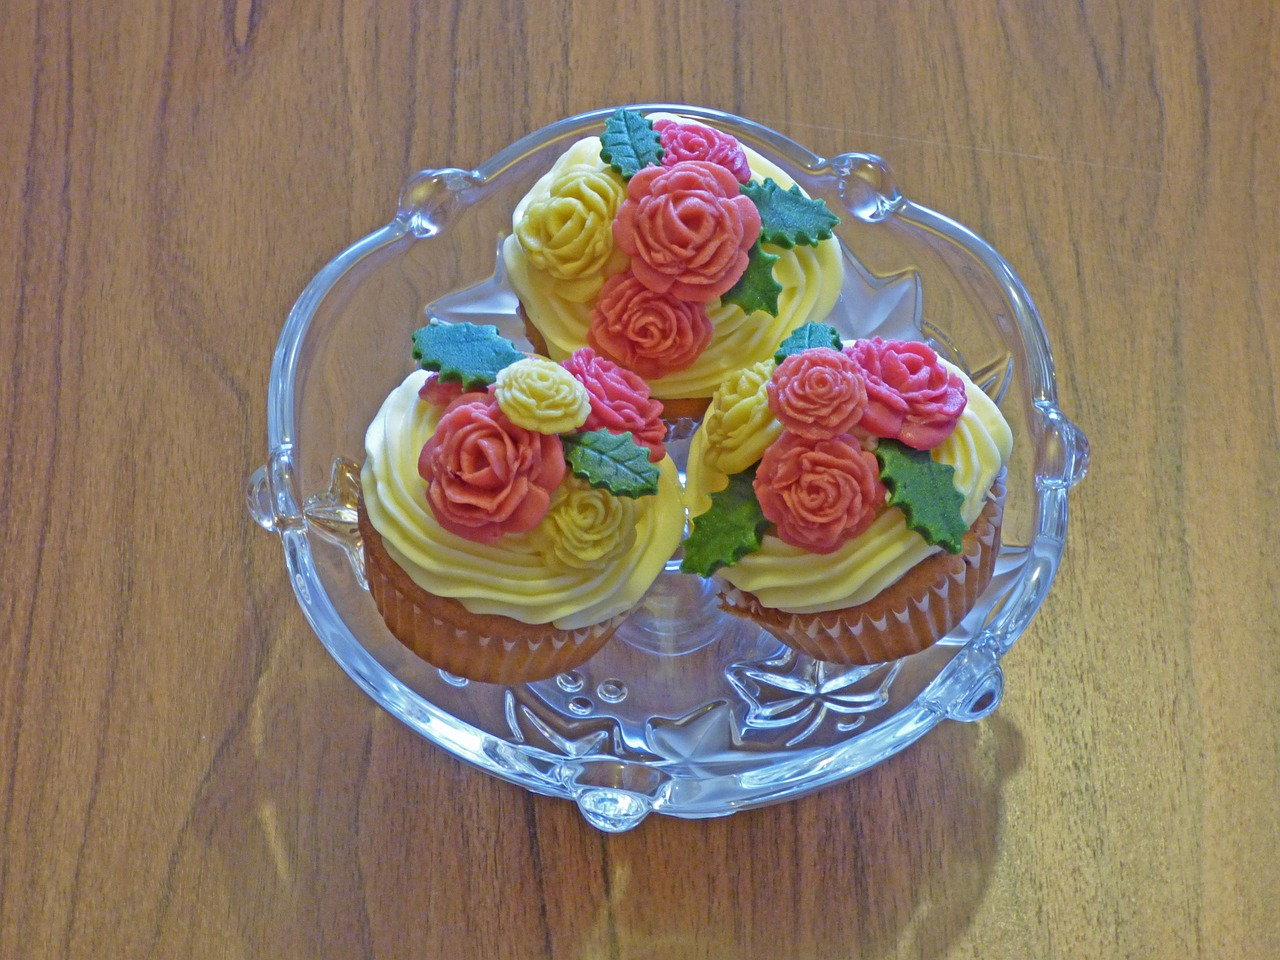 muffin,cupcakes,sweets,cakes,marzipan,ornamentation,confectioner's,sweet,cream,rose,florets,dessert,sugar,the formation of the,color,free pictures, free photos, free images, royalty free, free illustrations, public domain